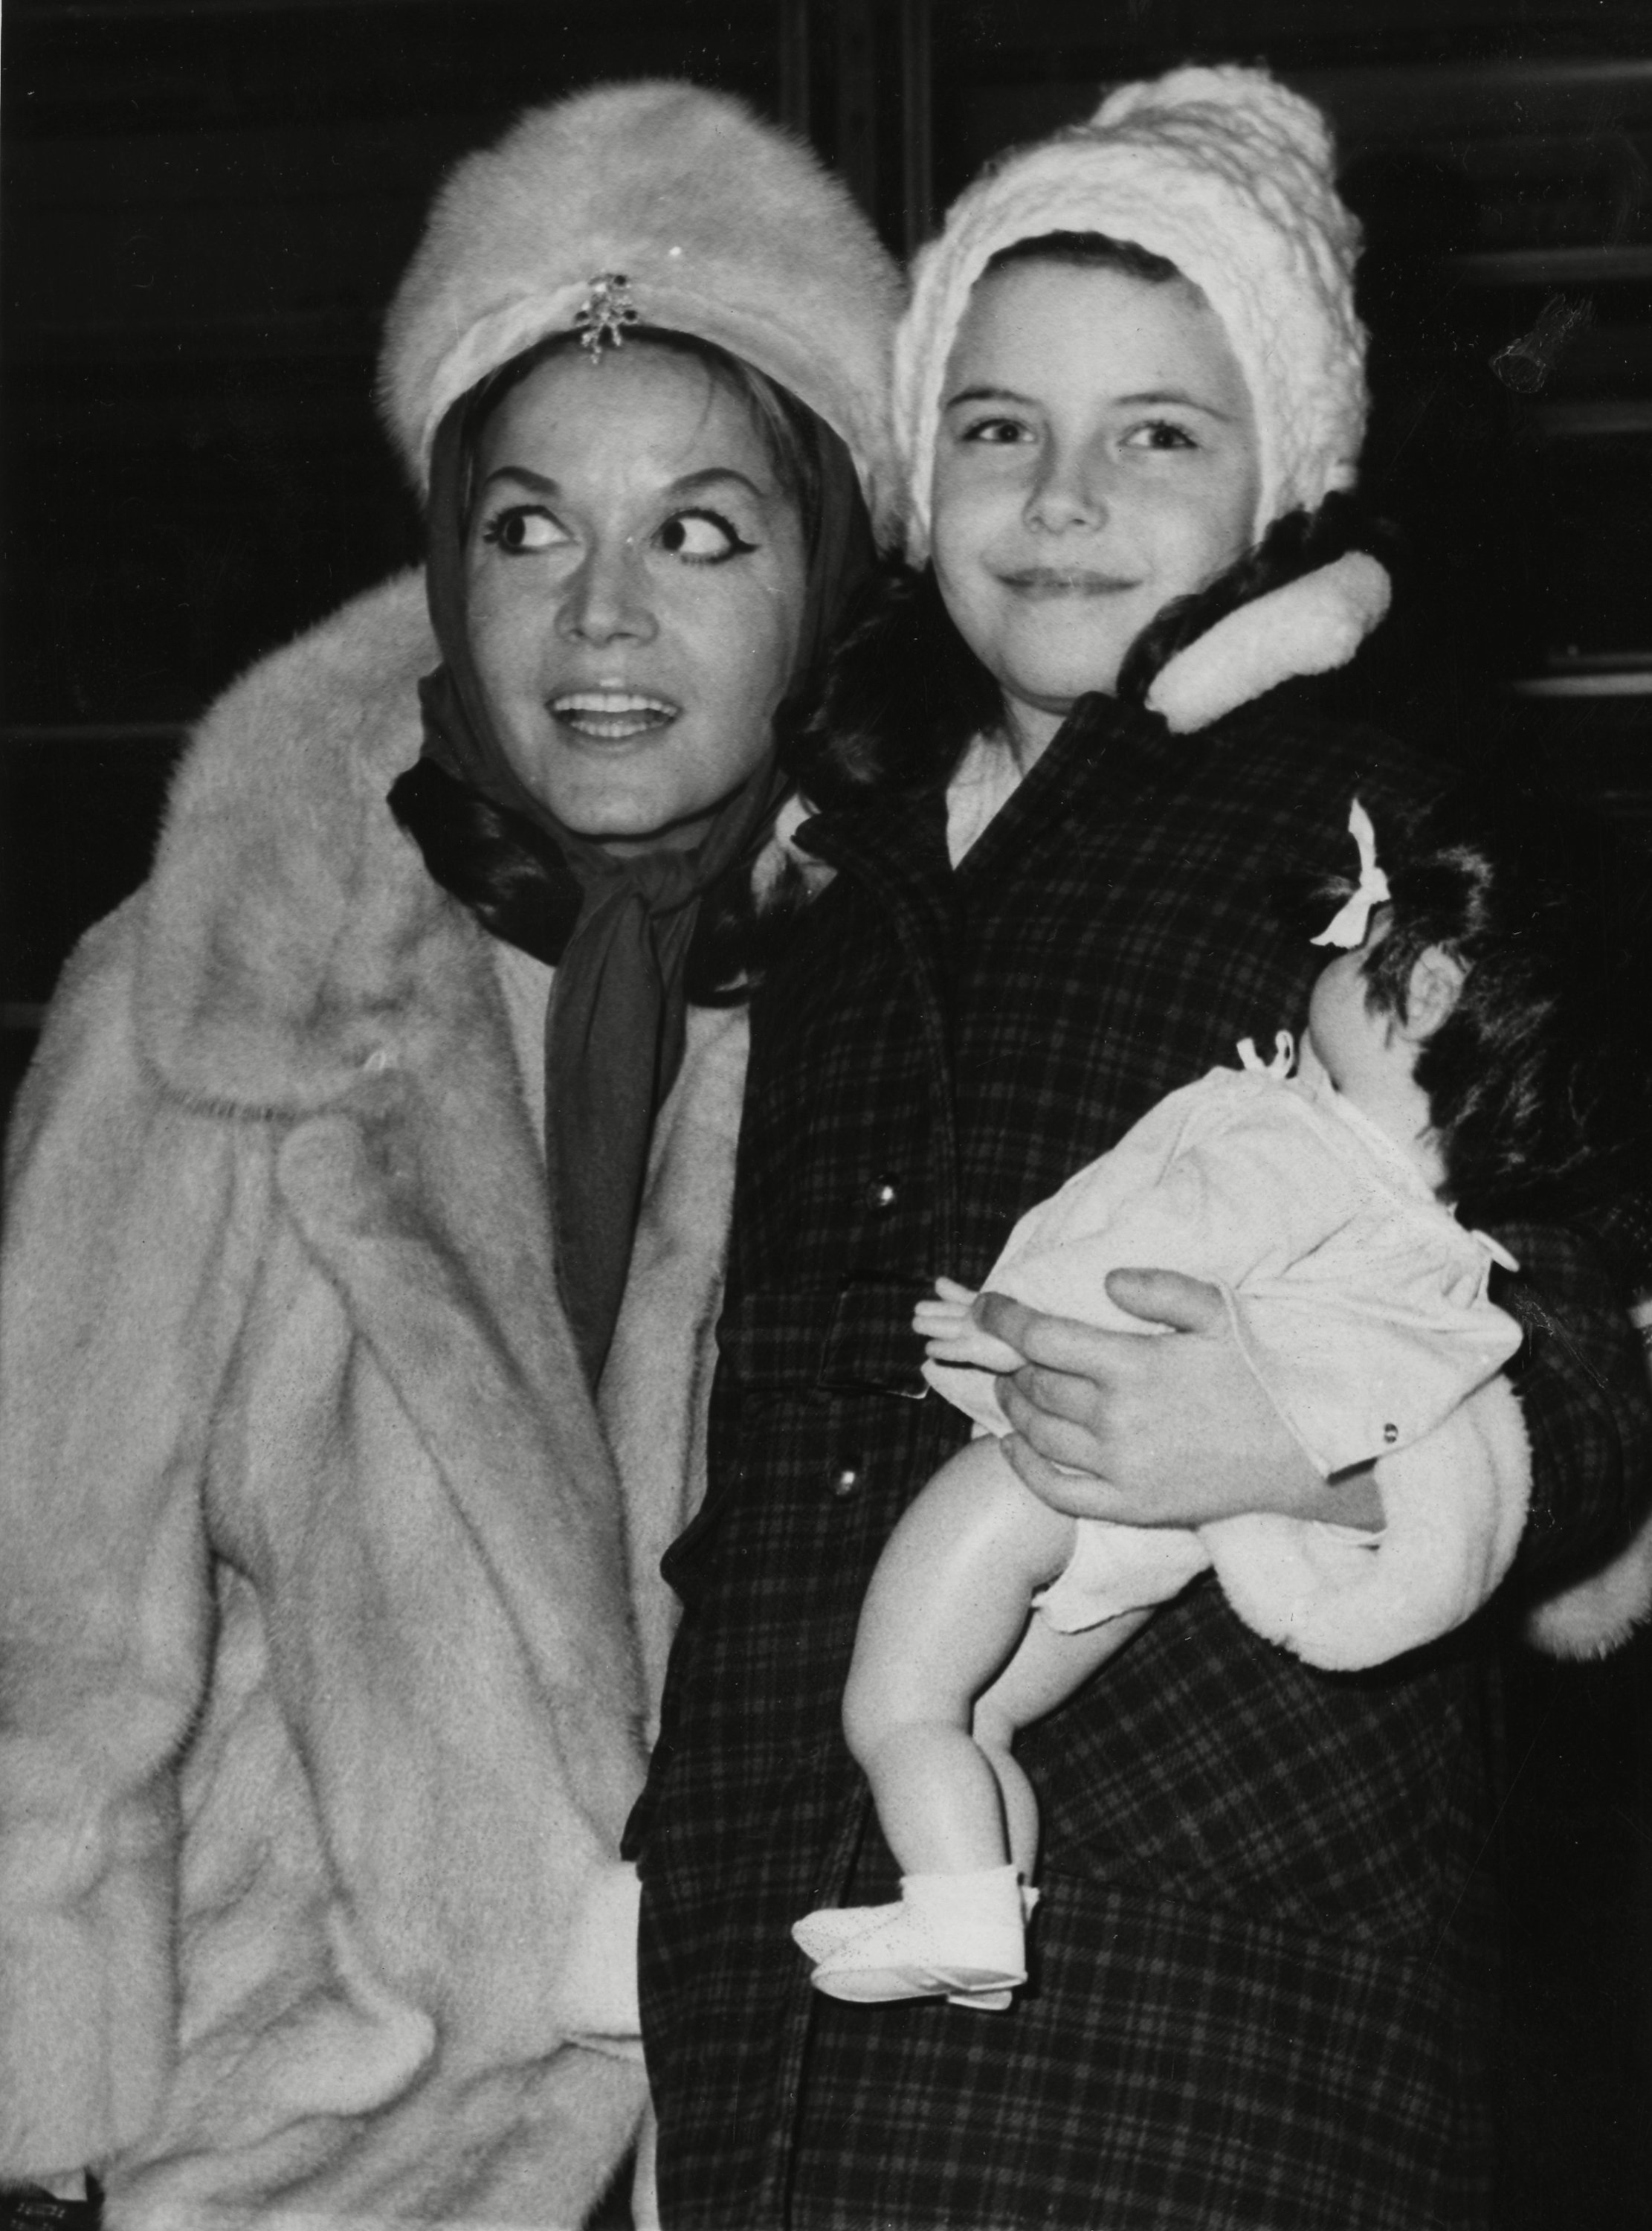 "Hungarian-born film actress Eva Bartok, arrives with her daughter Deana, 8, holding a puppet, at London's airport, England, coming from West Berlin, West Germany. Mrs. Bartok has spent the last six months in Berlin playing the lead role in a stage musical. After a month stay in England, she will fly to Israel to star in a new film entitled ""Sabina And Her Harem&quotEngland Eva Bartok and Daughter Deana, LONDON, United Kingdom England"